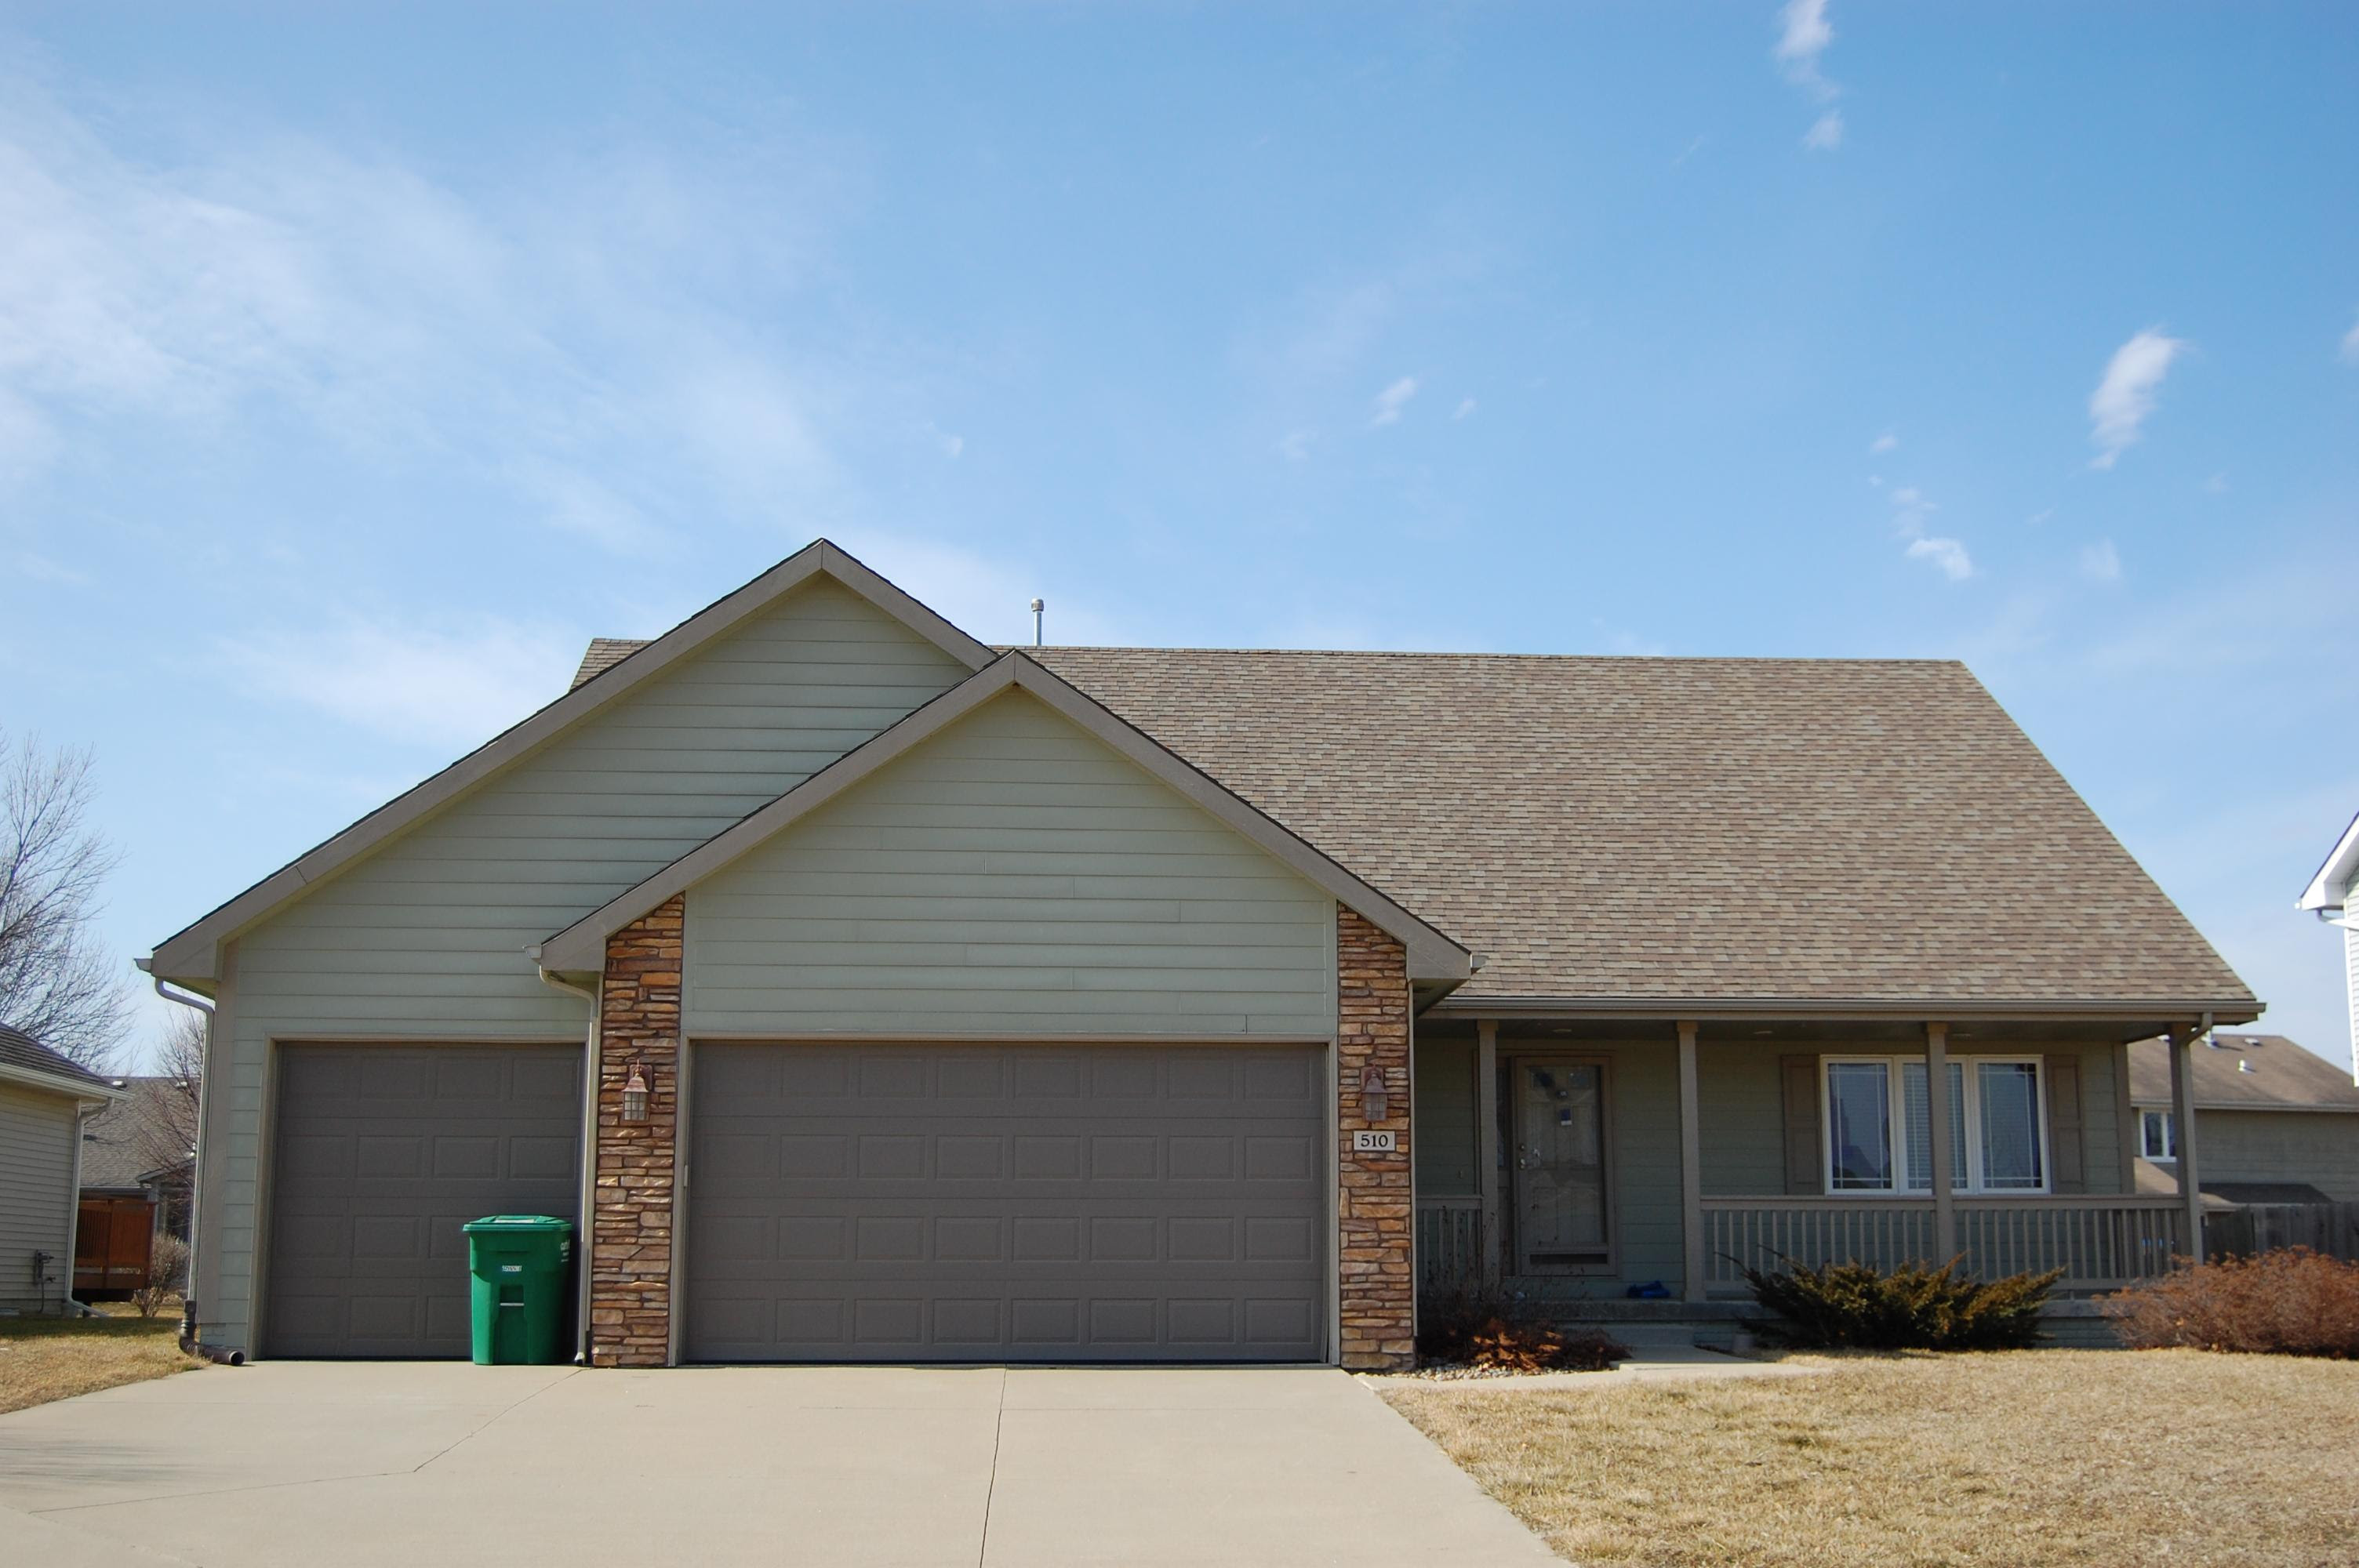 Ankeny, Iowa IA For Sale By Owner, Iowa FSBO Home in Ankeny IA, SE MICHAEL DR ForSaleByOwner